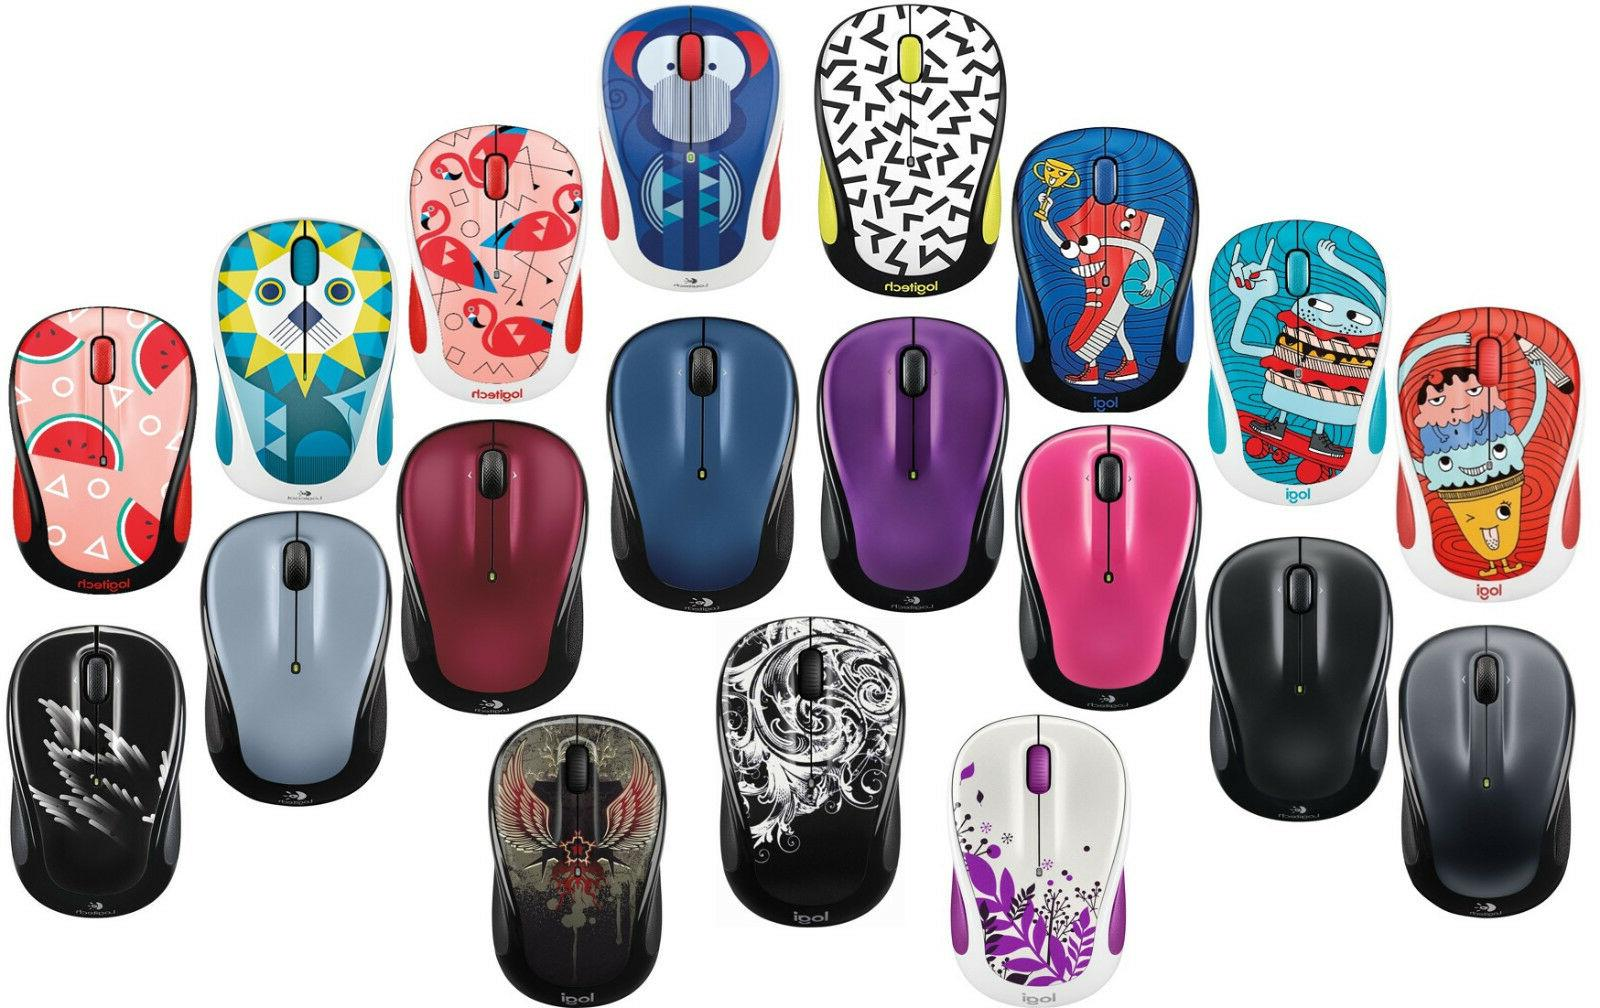 m325 wireless mouse in multi colors red